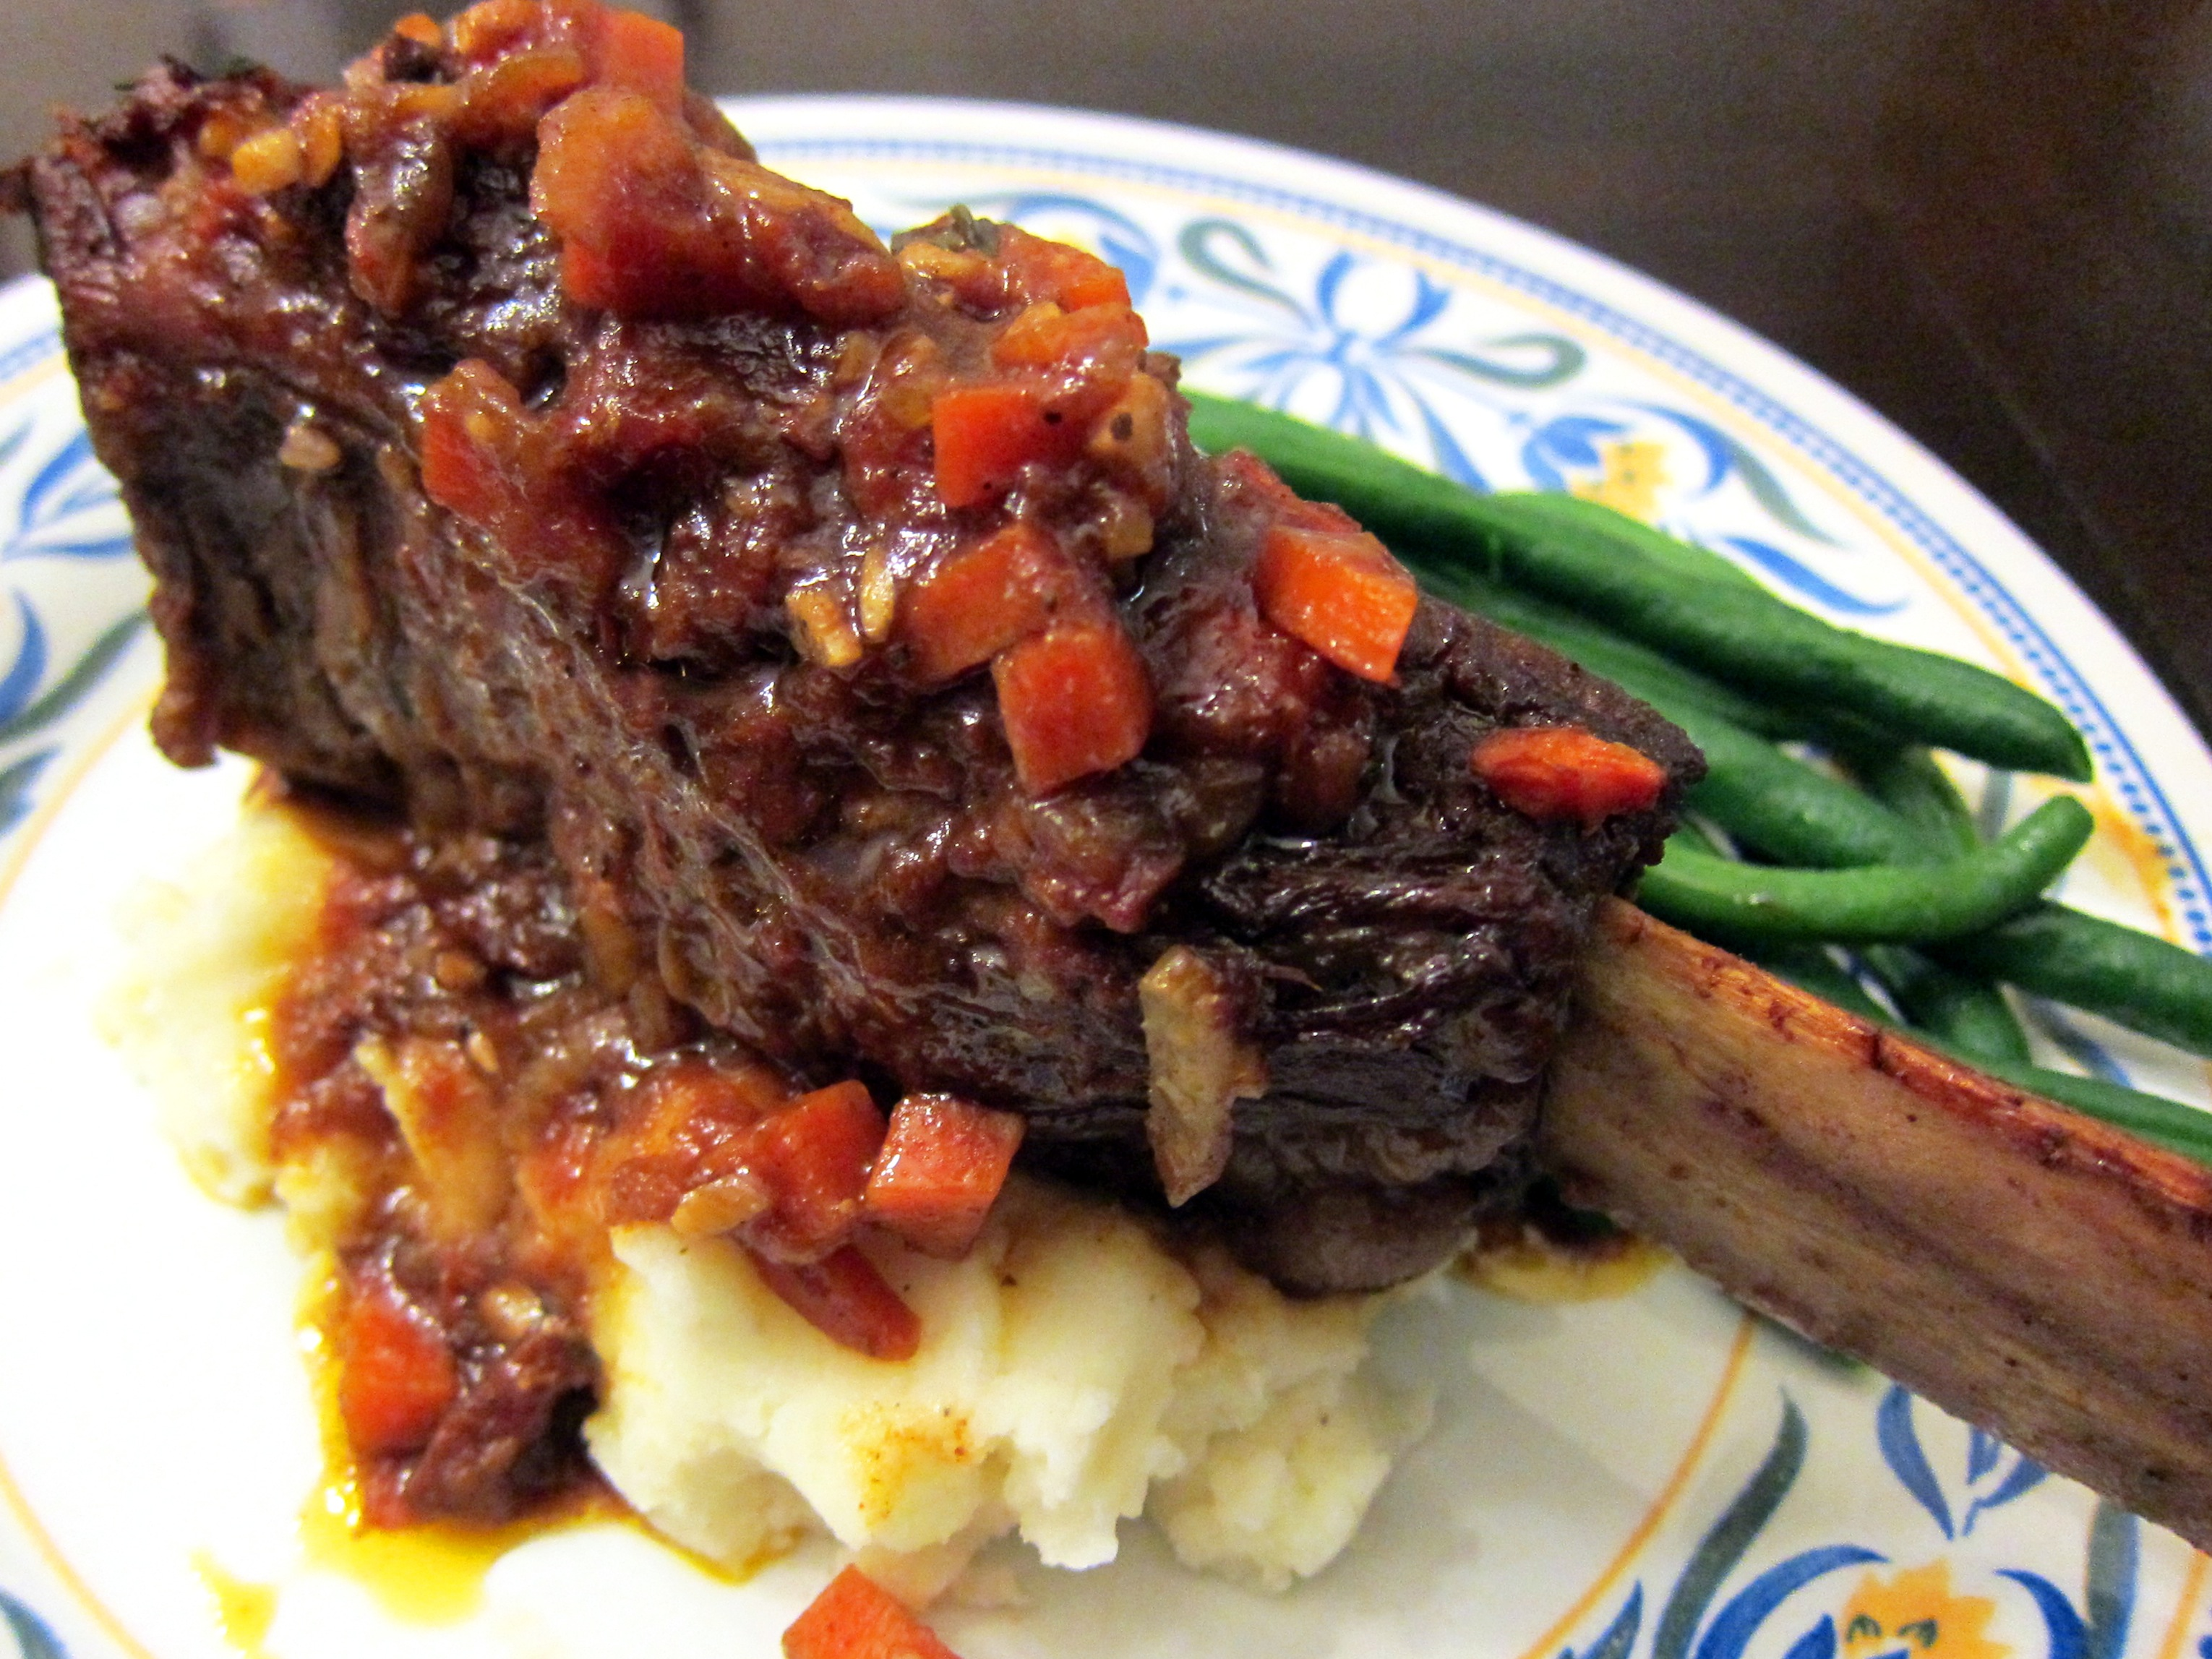 Smoky Beer-Braised Short Ribs